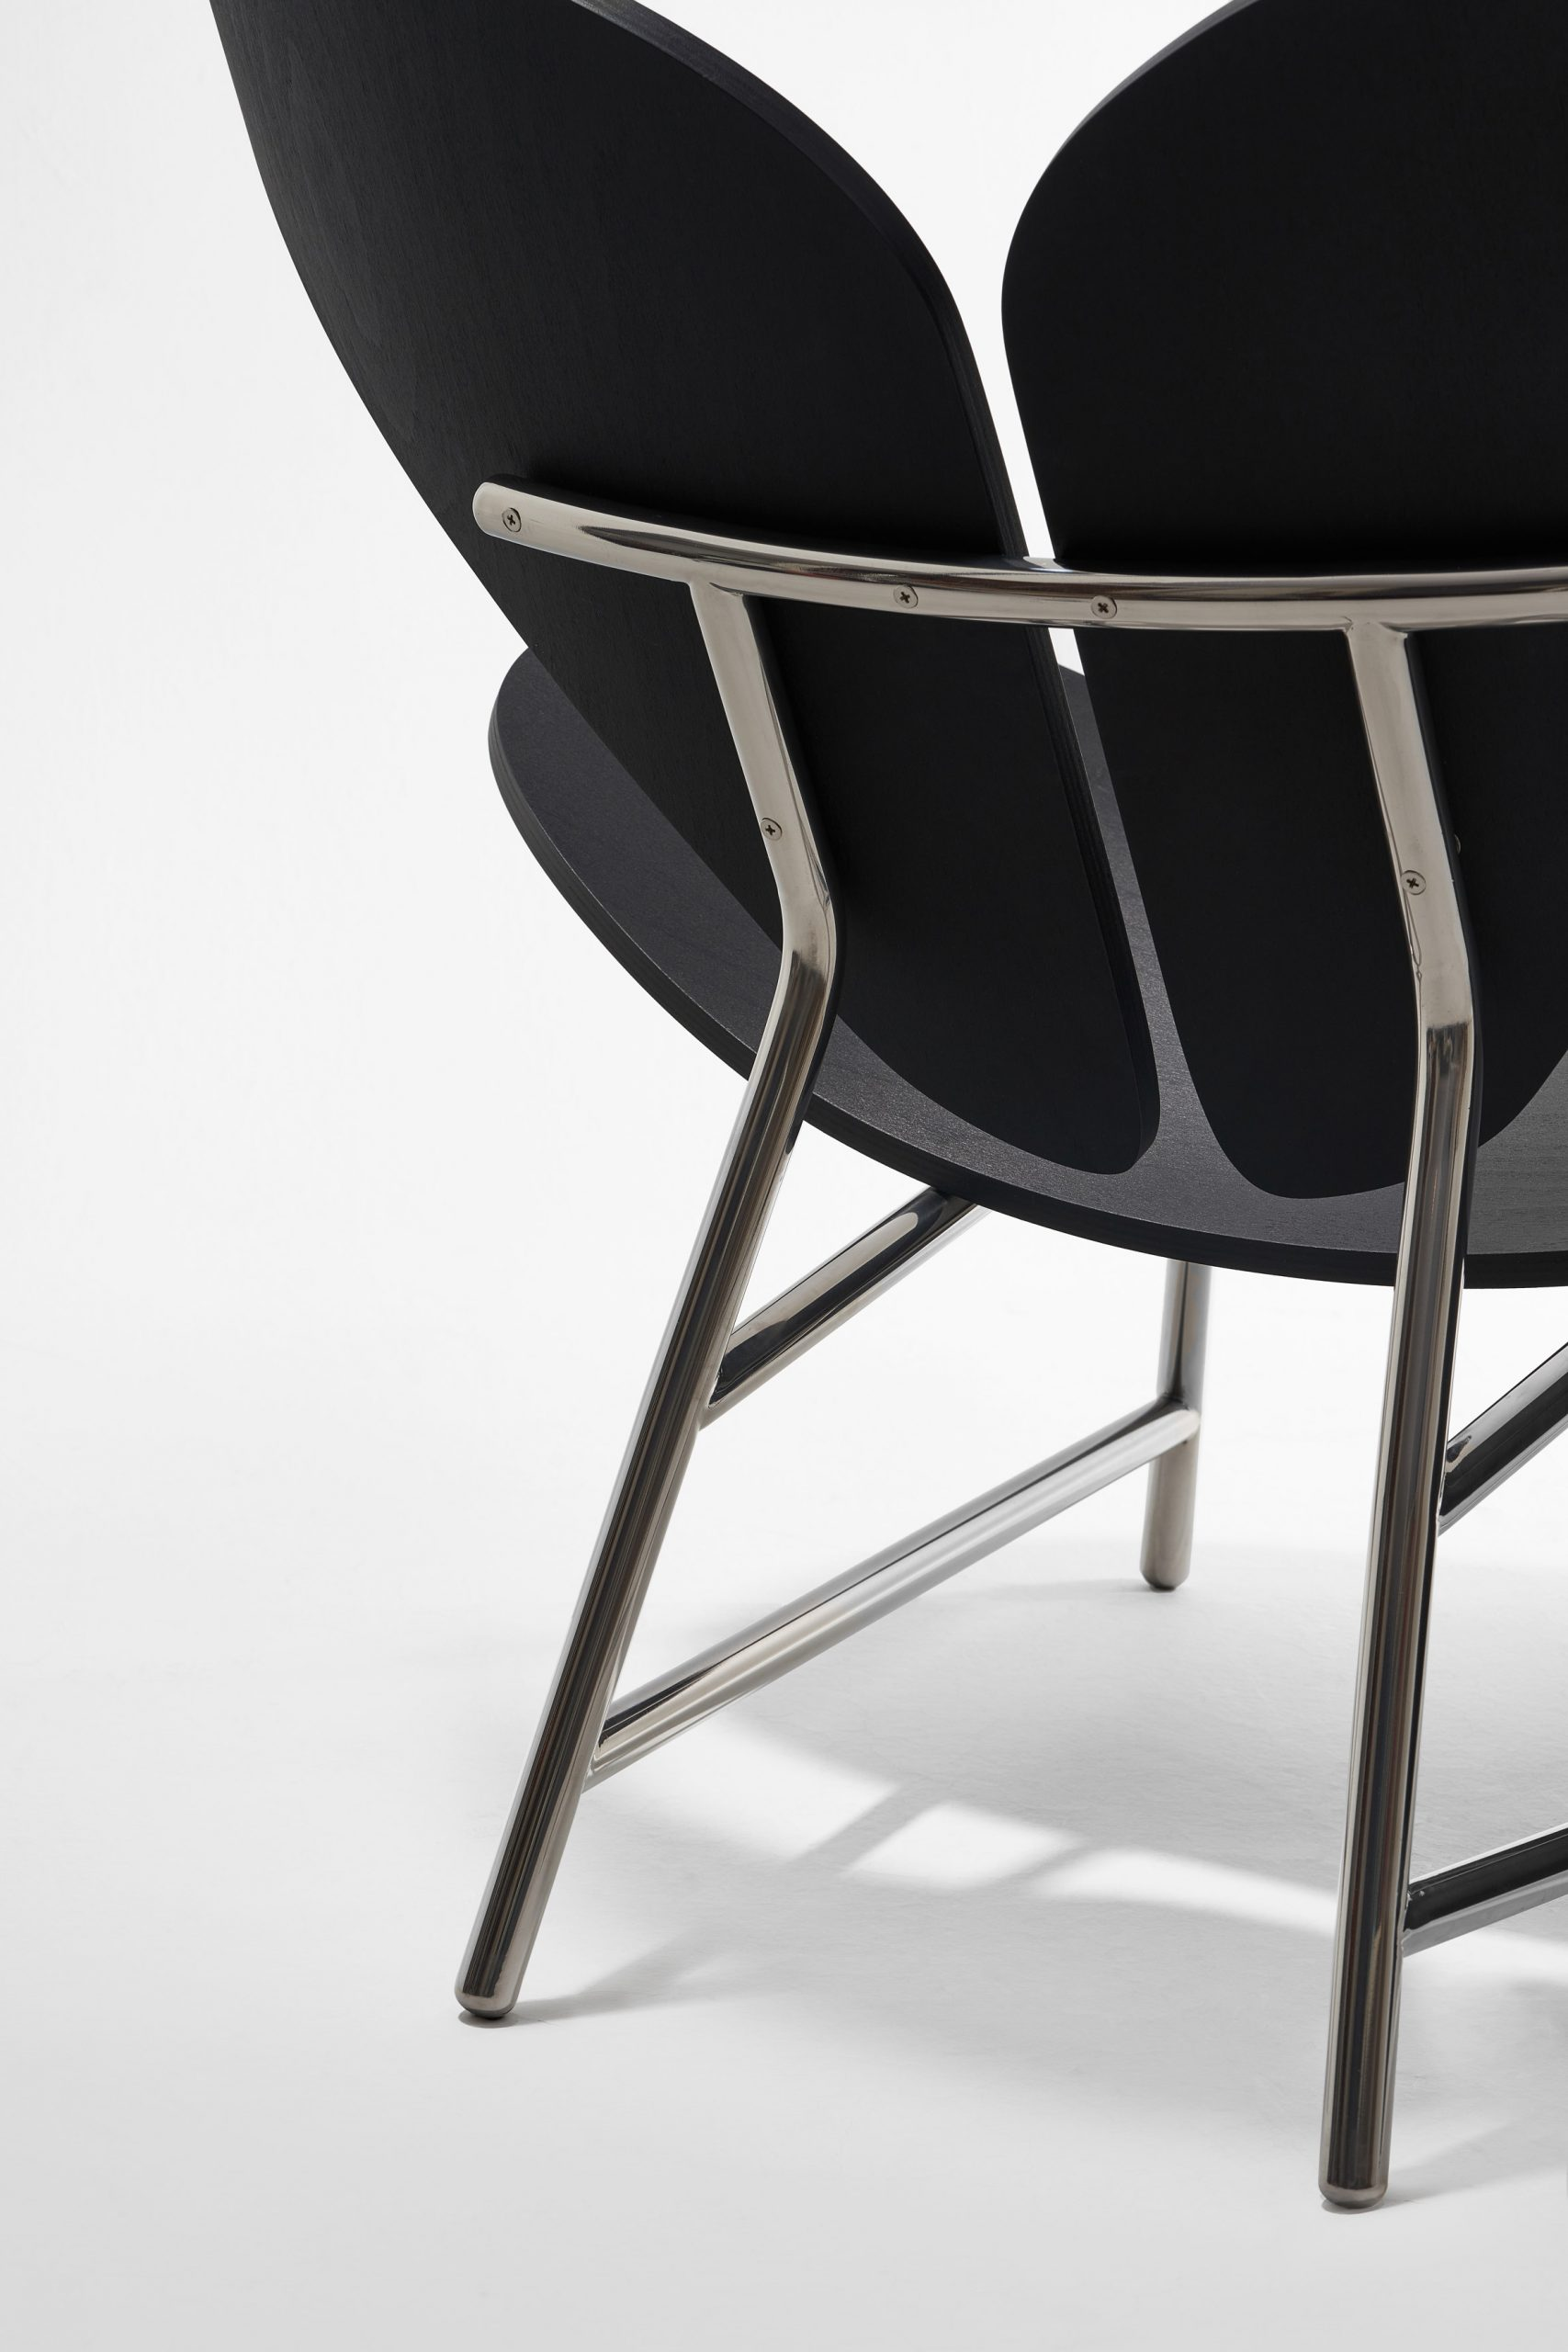 Stainless steel hardware on chair